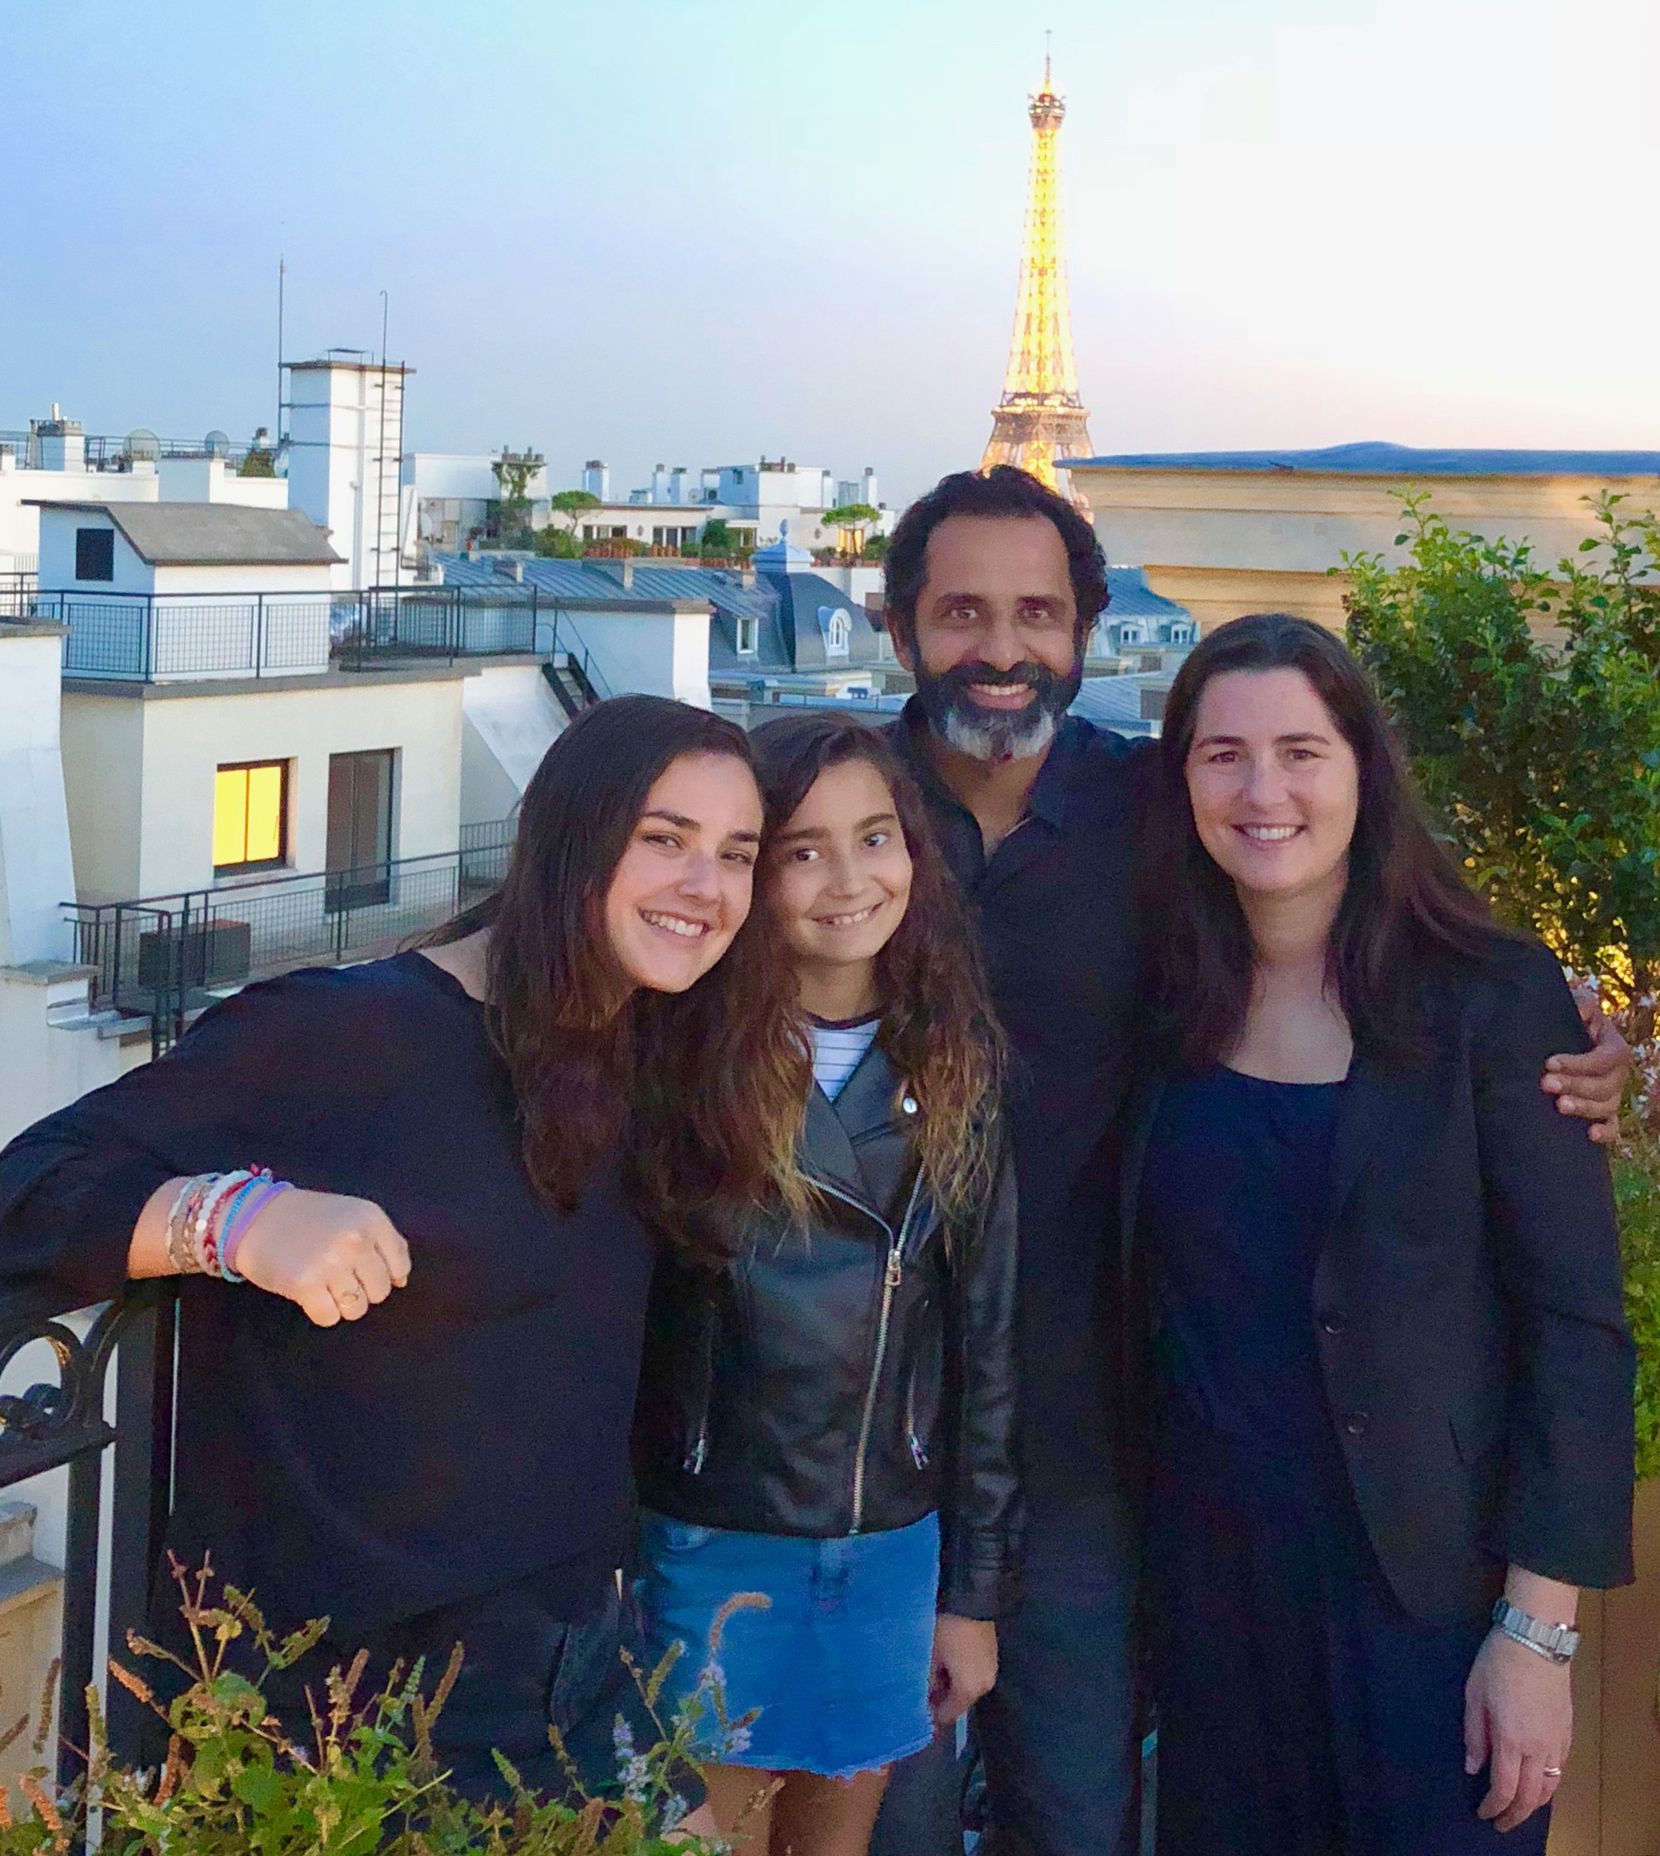 This family photo shows (from left) daughters Talia and Maya with Madhu Rajendran and Mandy Ginsberg on a family vacation to Paris in 2019.